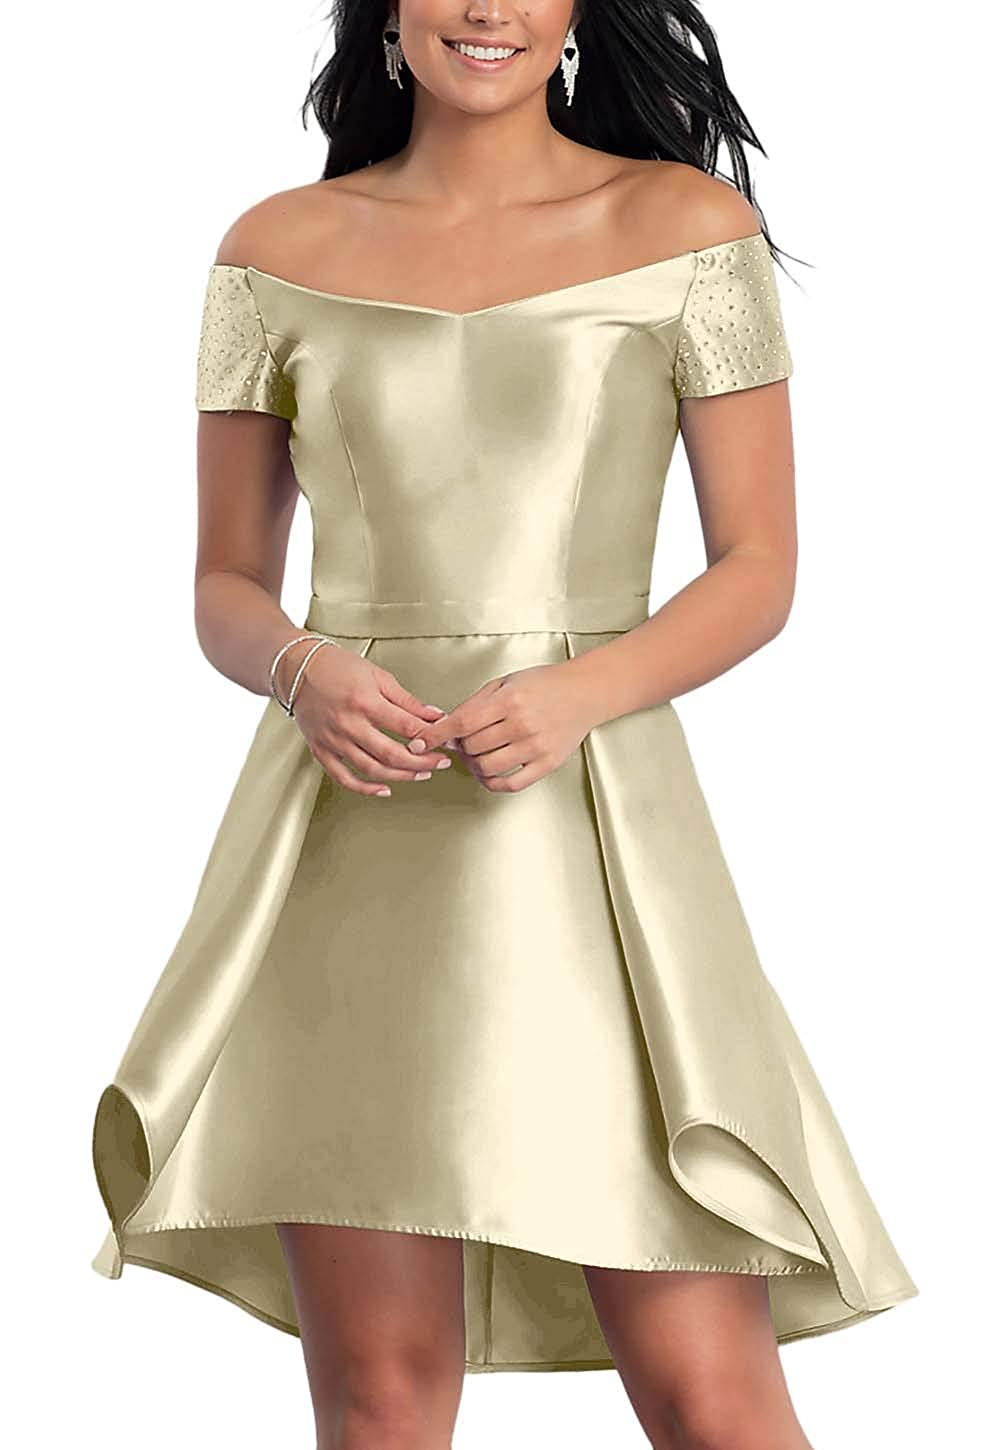 Champagne FeiYueXinXing Satin HighLow Short OffTheShoulder Homecoming Dress for Juniors with Pockets